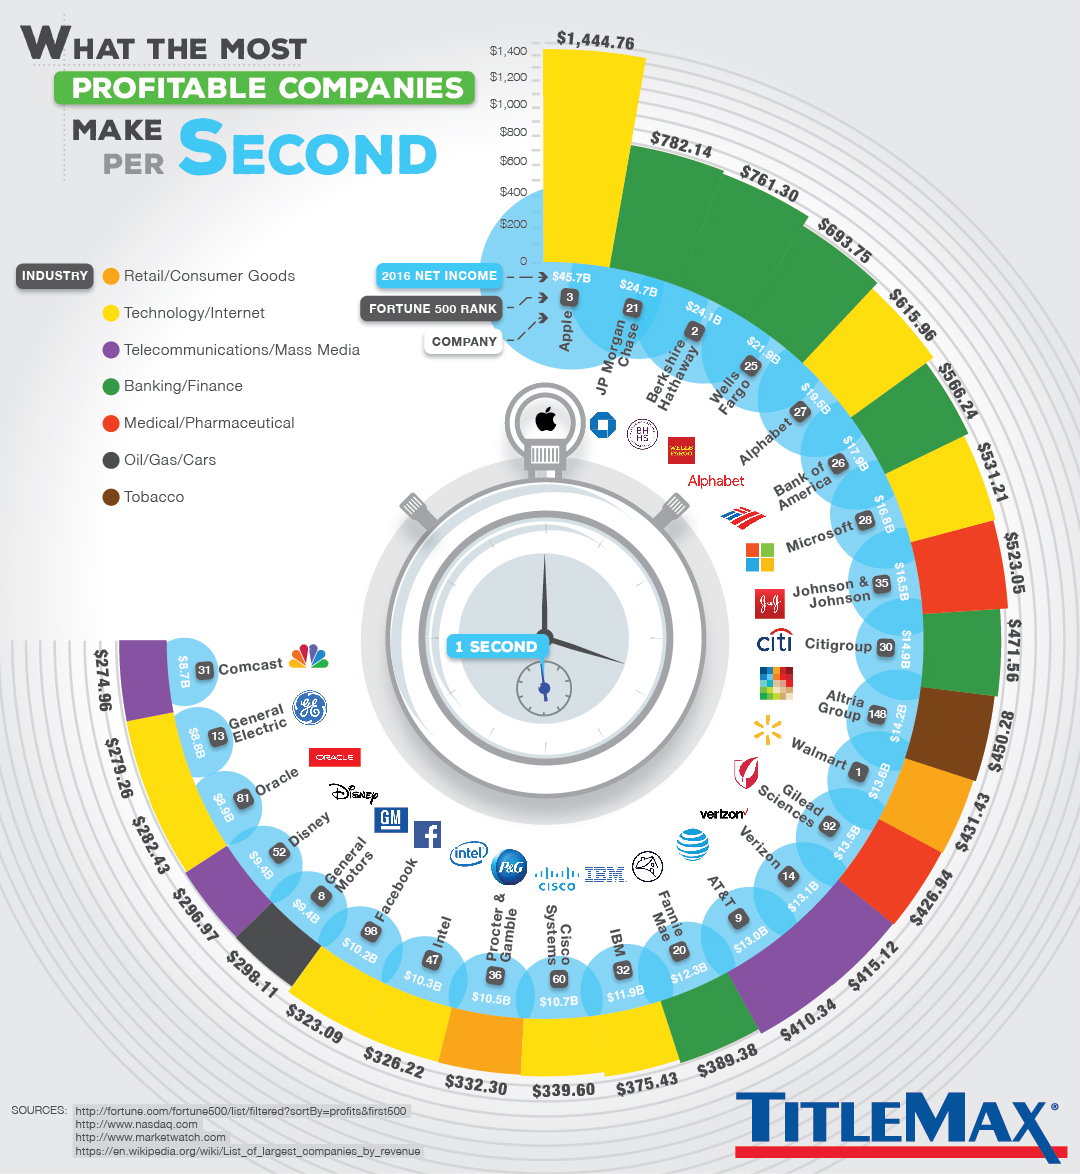 what big companies make per second